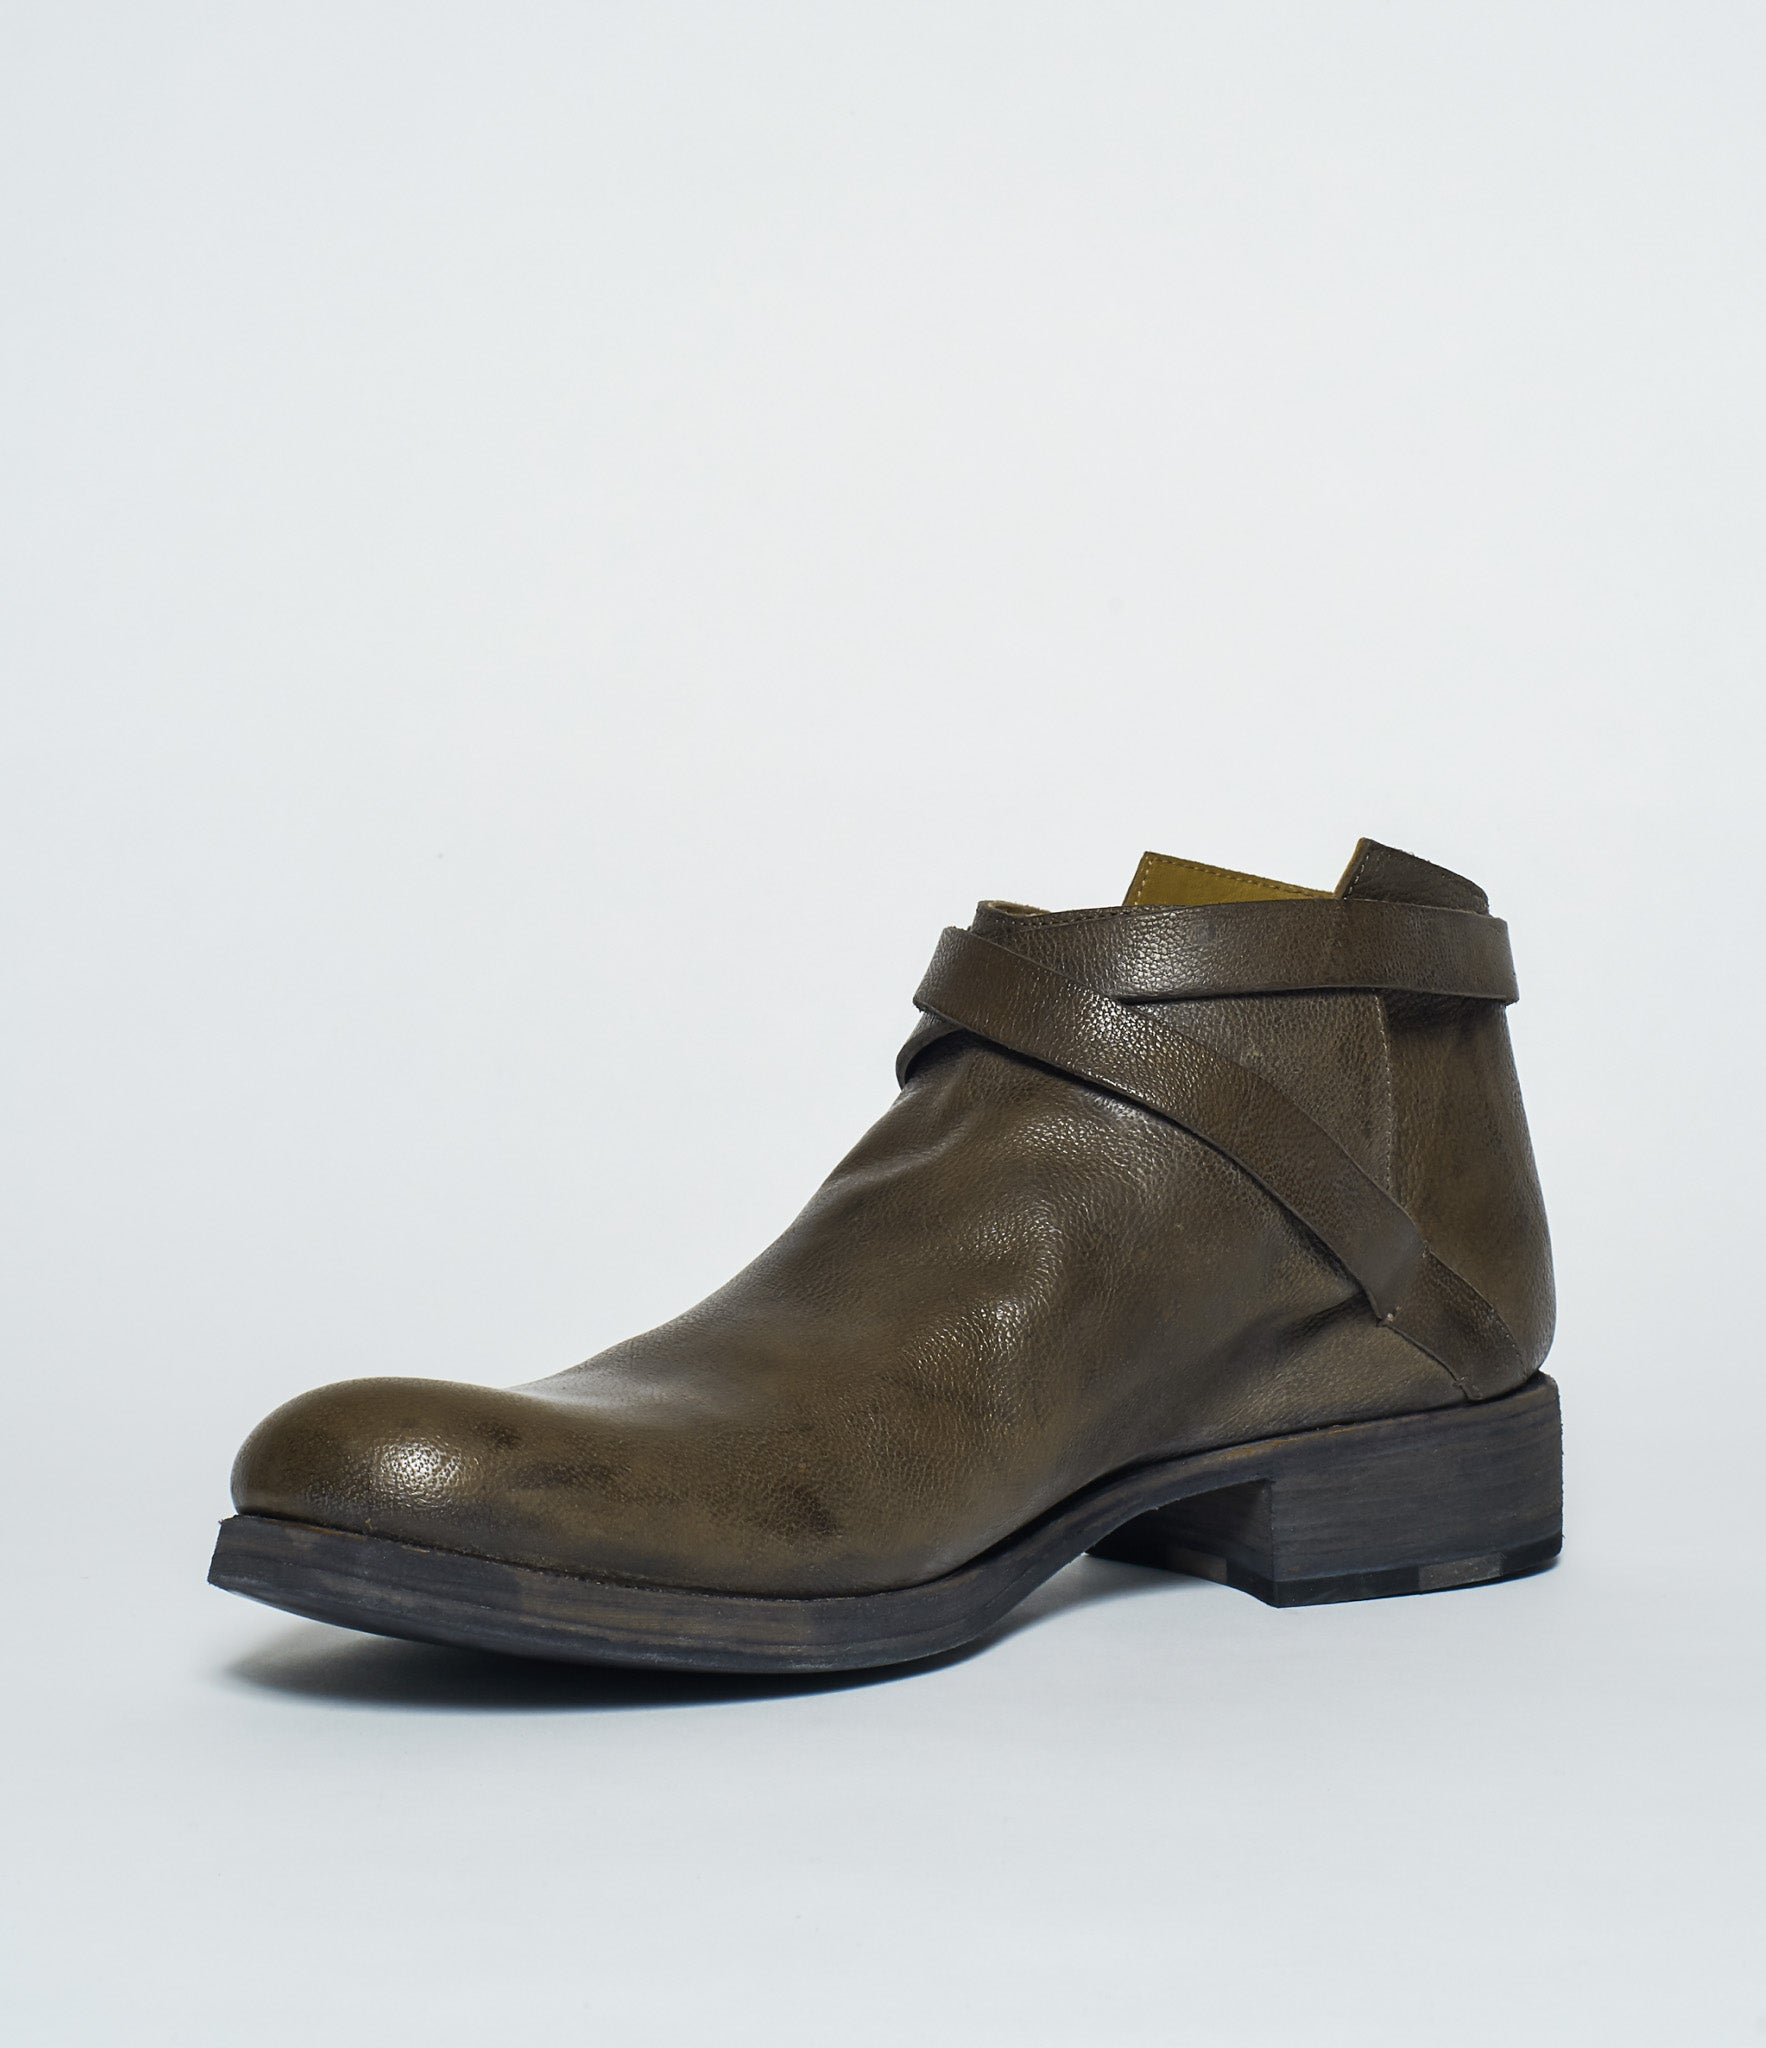 m.a+ Coal Camel Leather Buckled Strap Ankle Boots